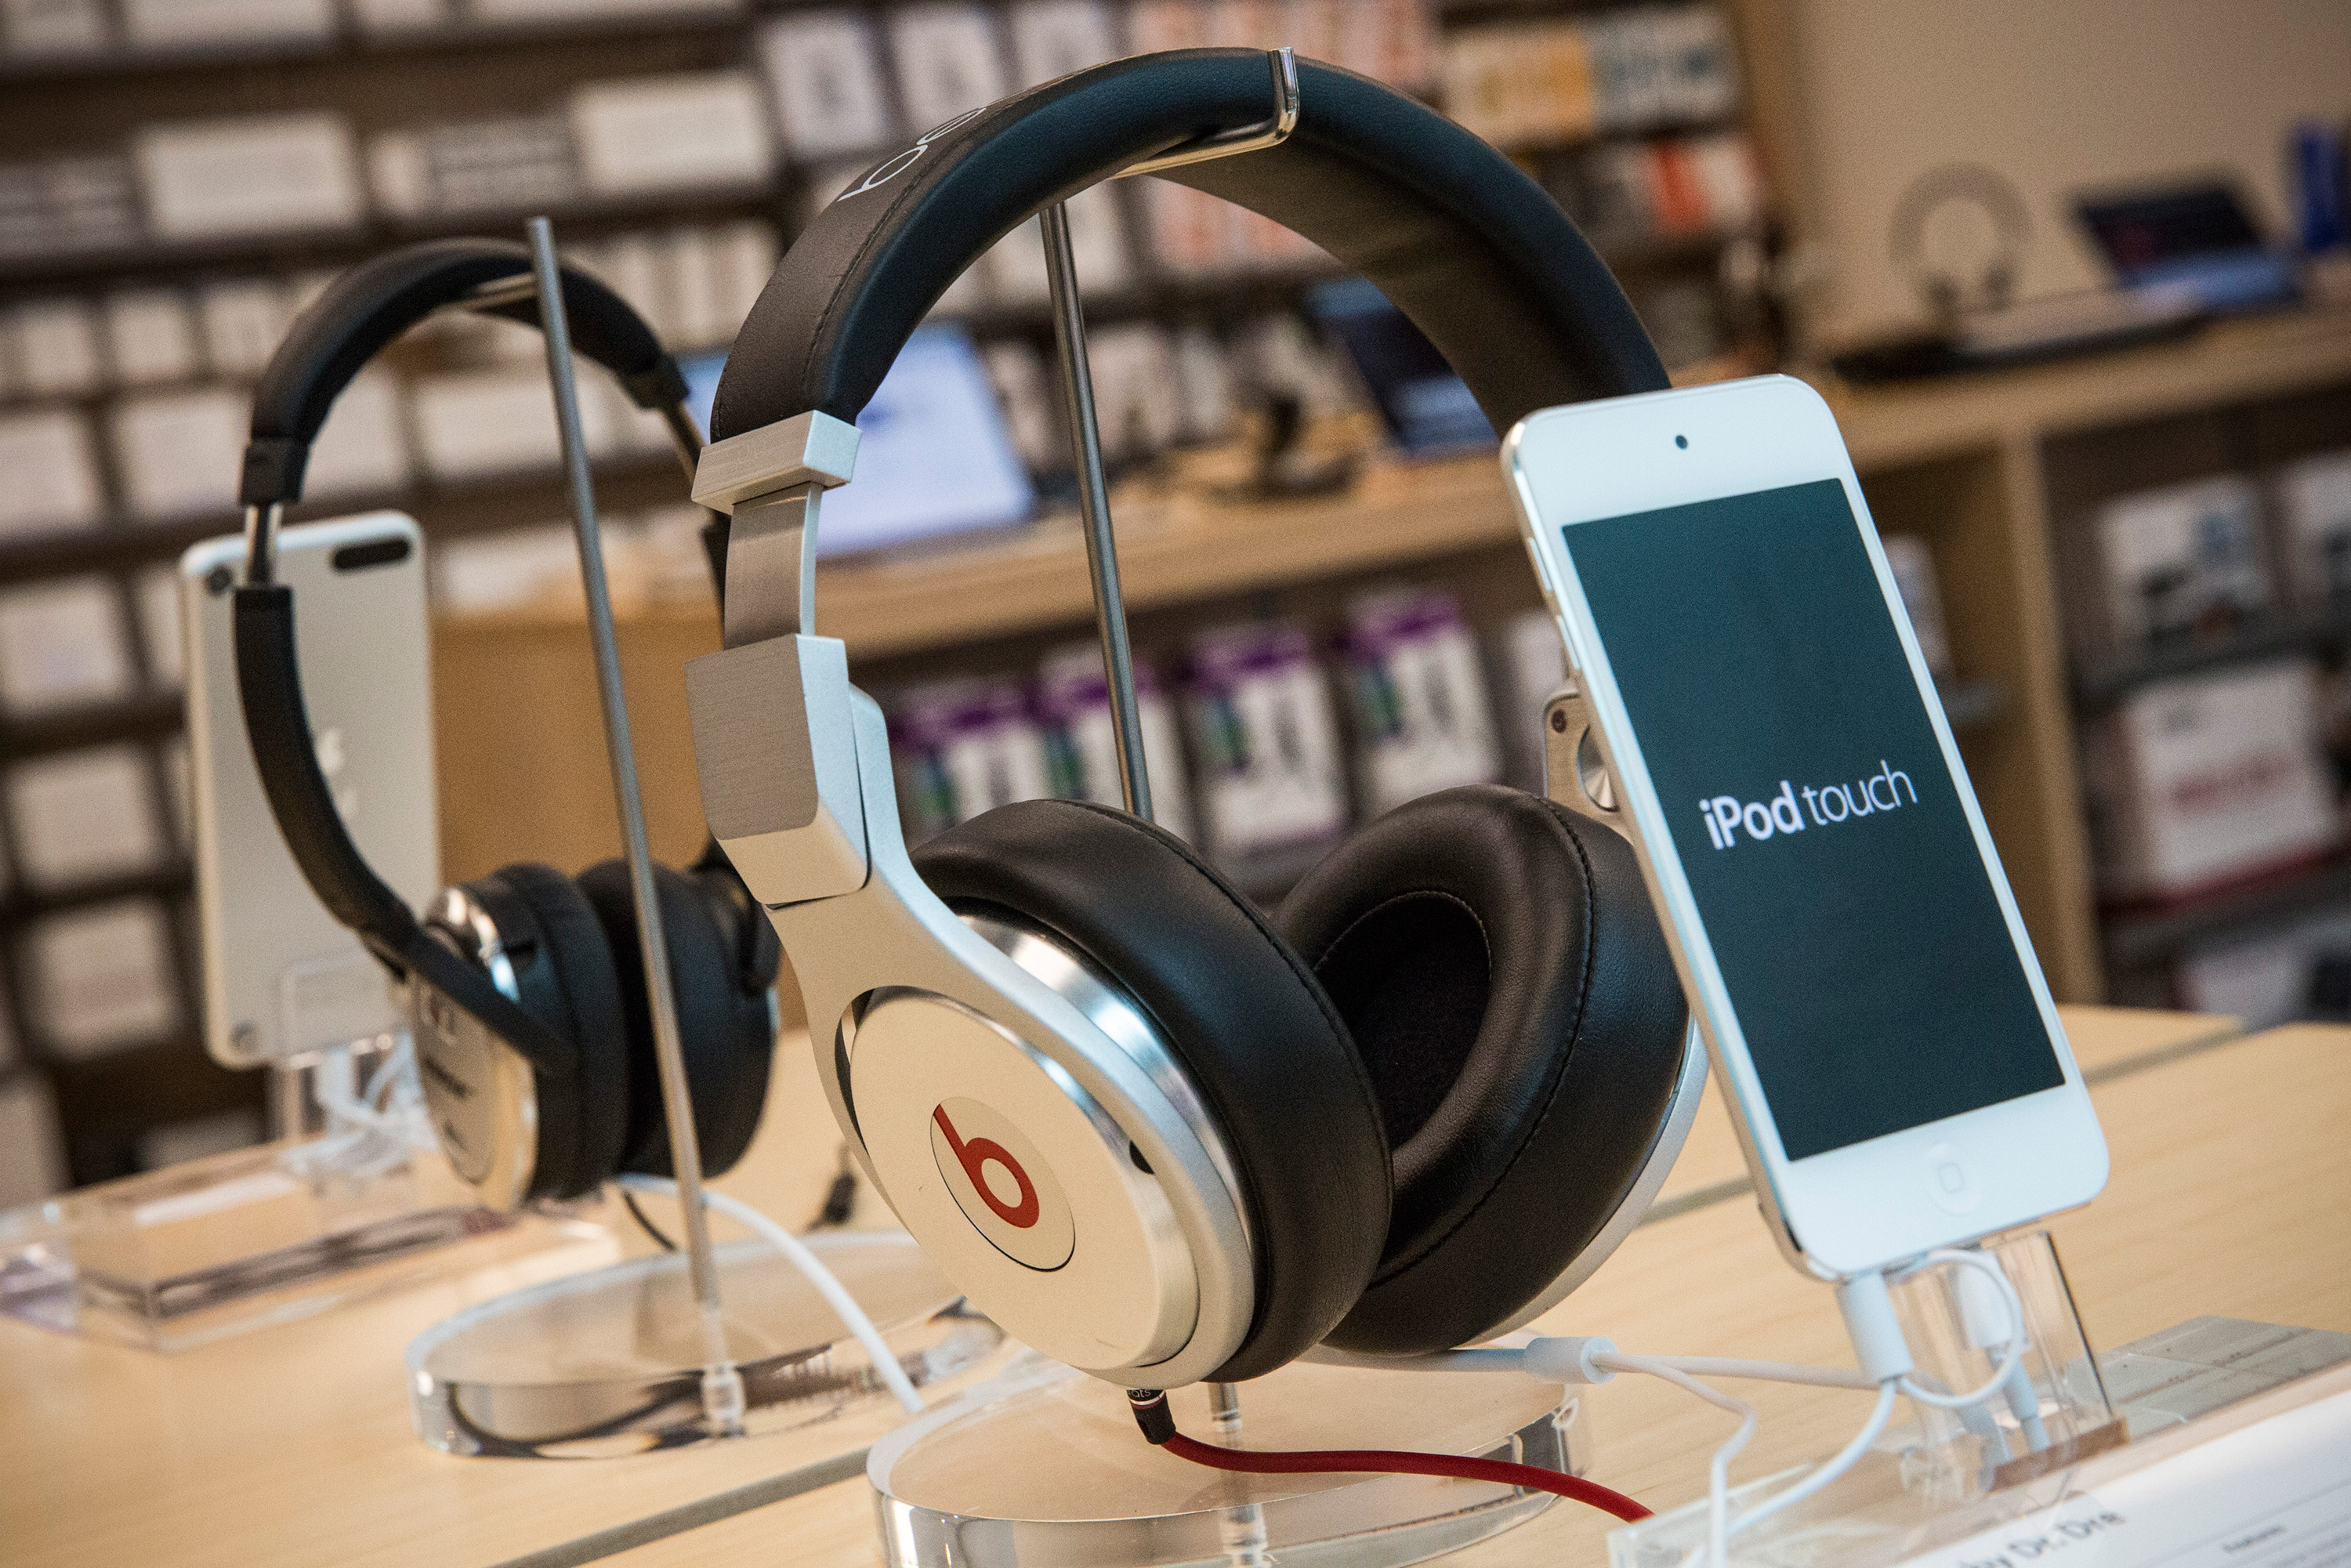 Beats headphones are sold along side iPods in an Apple store on May 9, 2014 in New York City. Apple is rumored to be consideringing buying the headphone company for $3.2 billion.  (Photo by Andrew Burton/Getty Images)